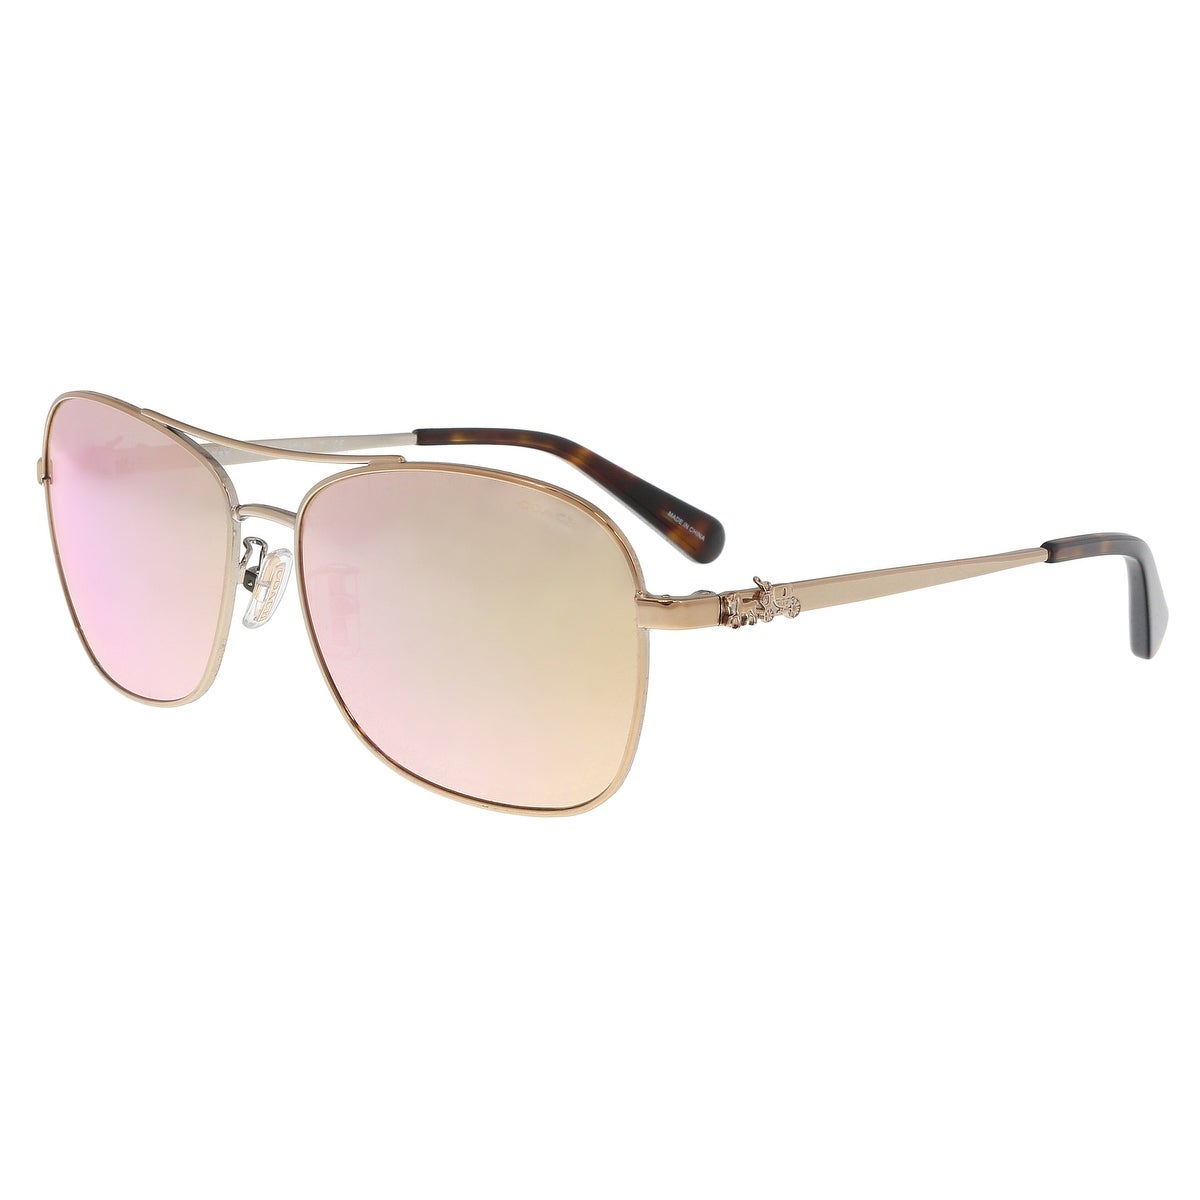 7f09e8741 ... coupon shop coach hc7080 9323r5 rose gold aviator sunglasses 55 15 140  free shipping today overstock ...